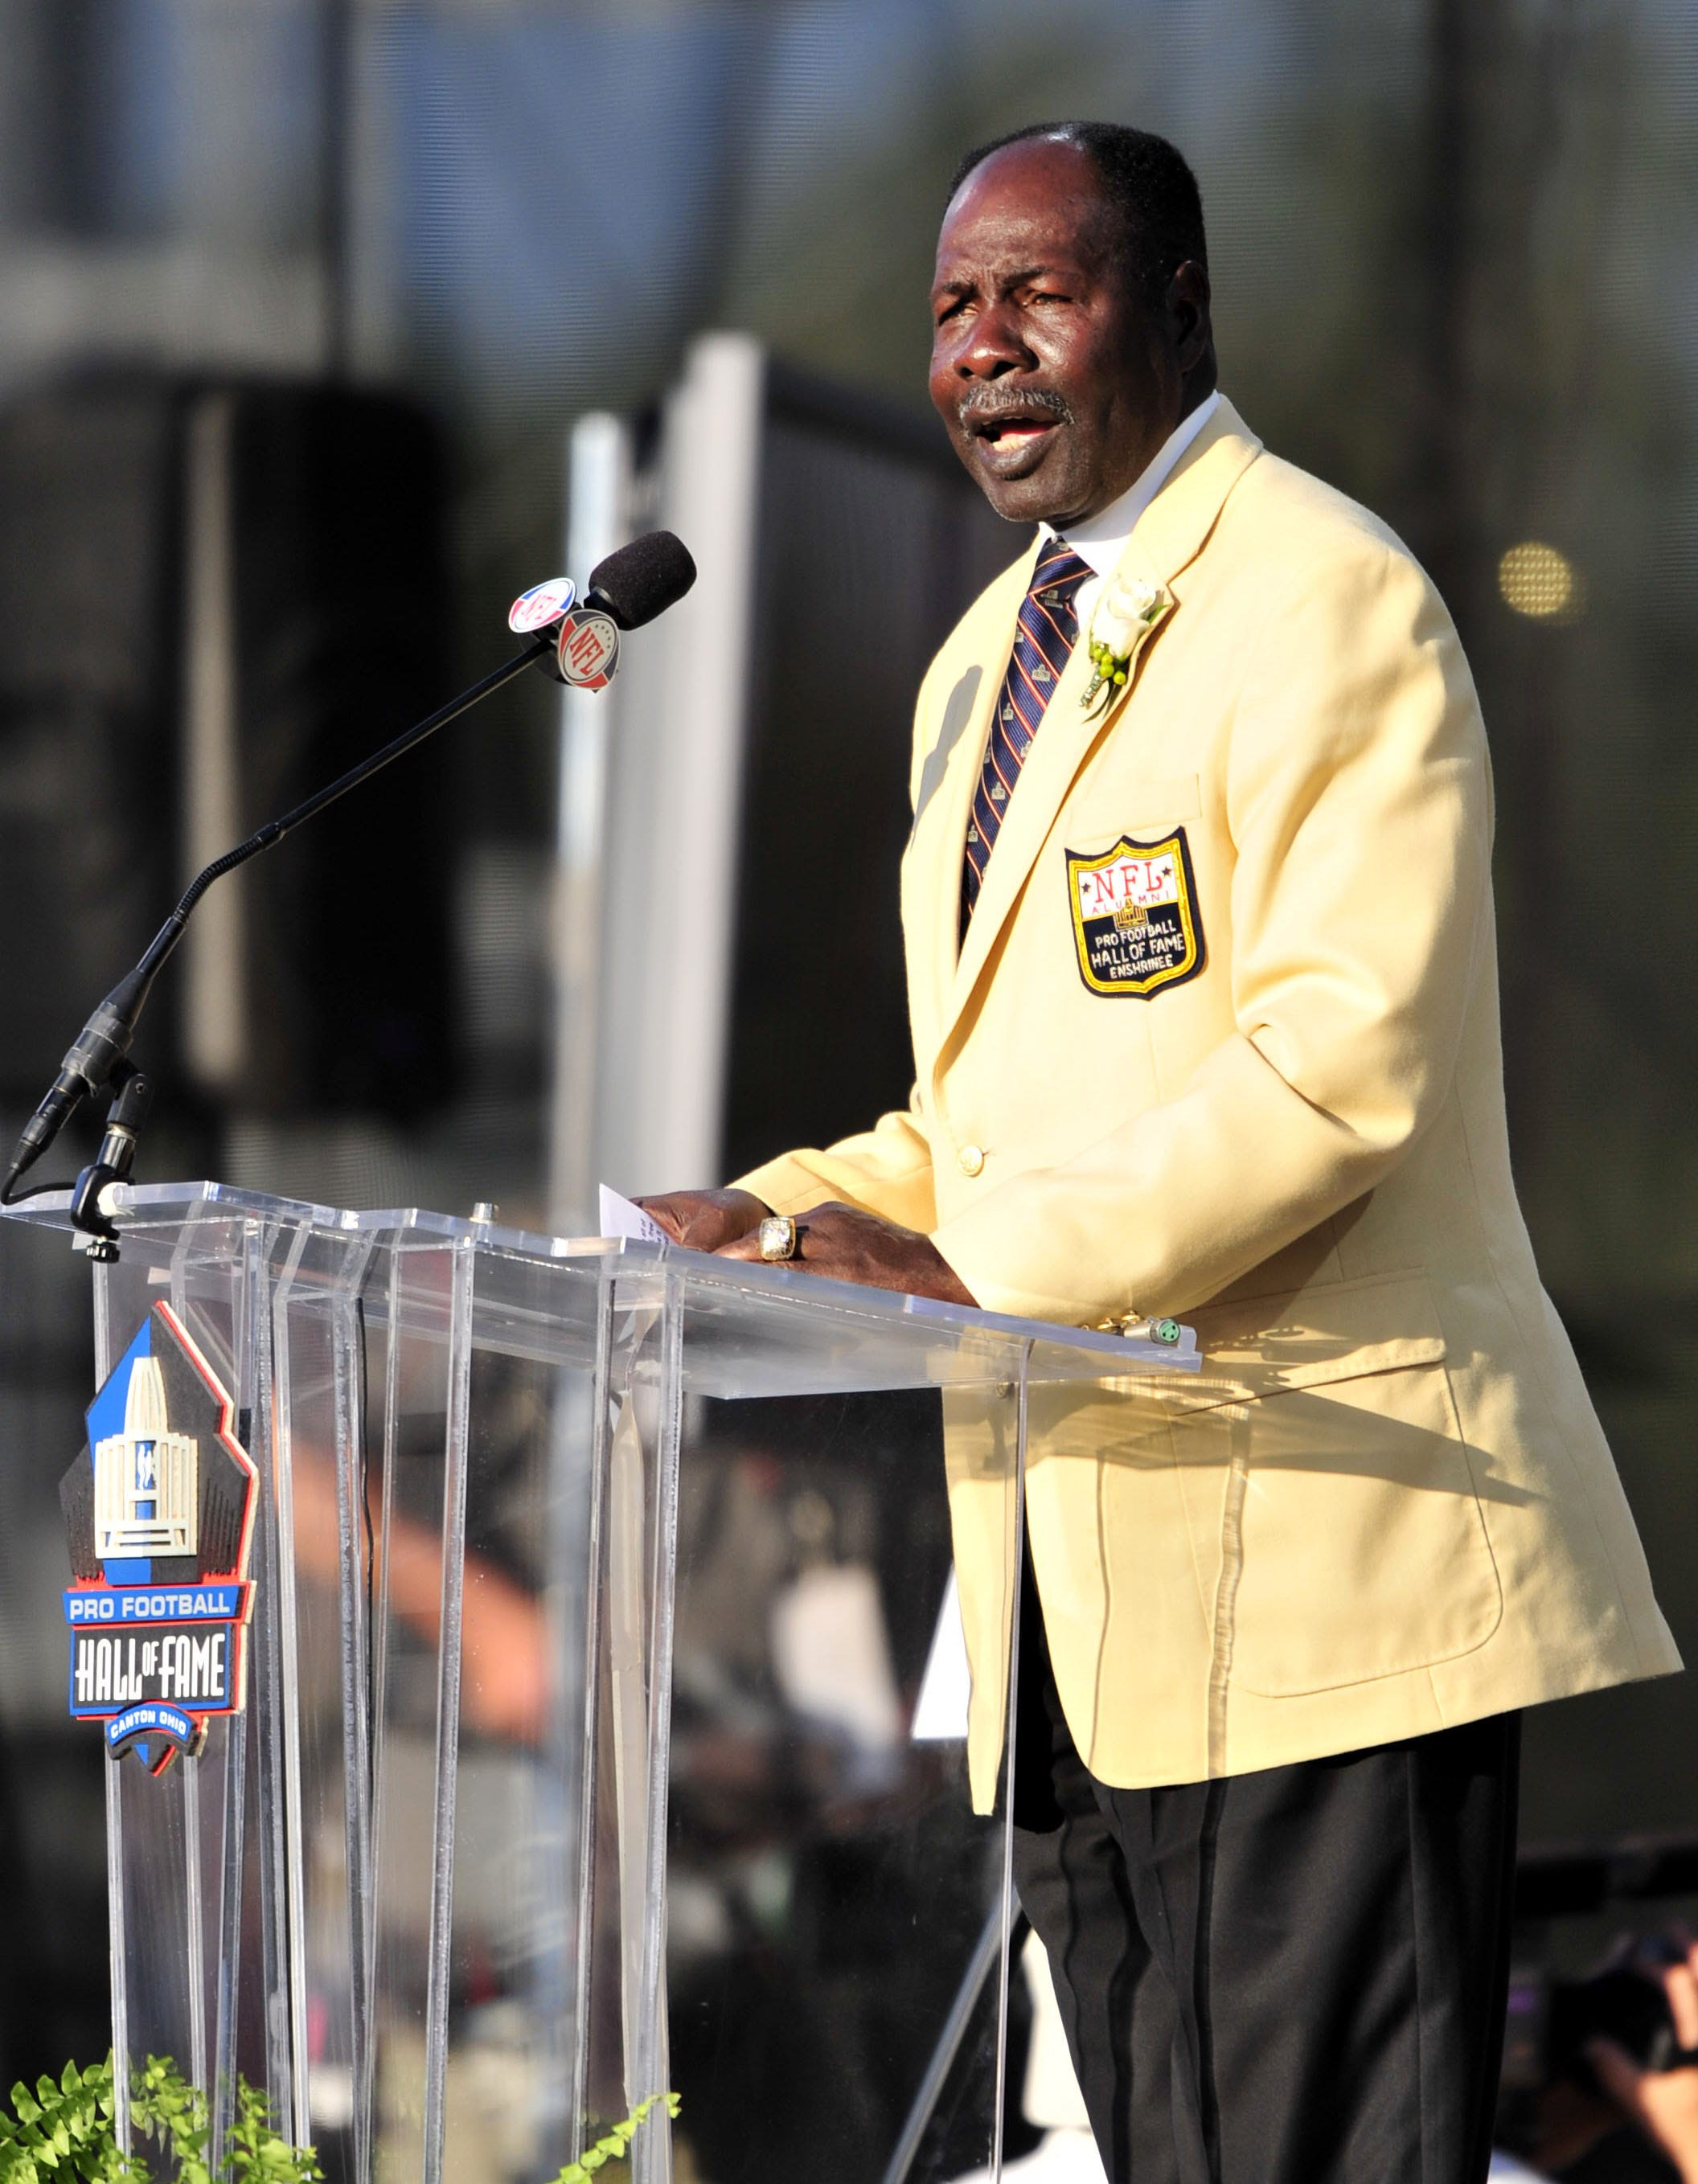 Emmitt Thomas, a Pro Football Hall of Famer, is retiring as Chiefs assistant coach